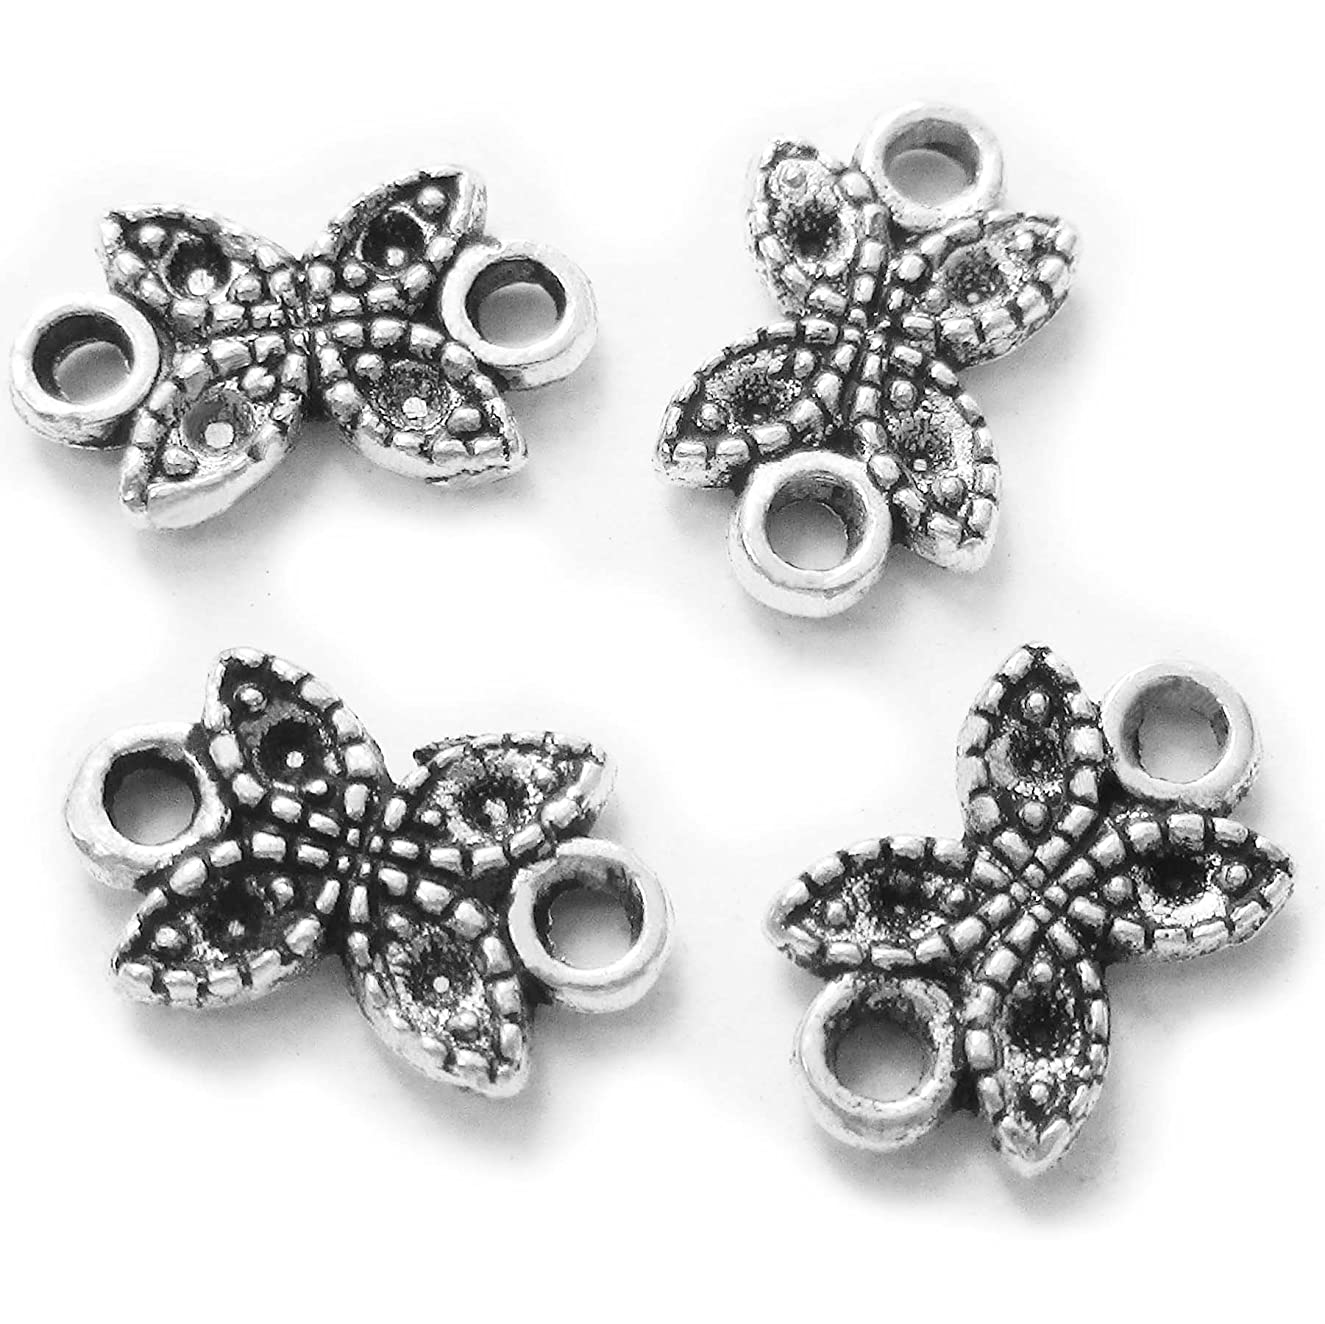 Heather's cf 180 Pieces Silver Tone 4 petals Spacer Connector Findings (2 Holes)Jewelry Making 11X7mm